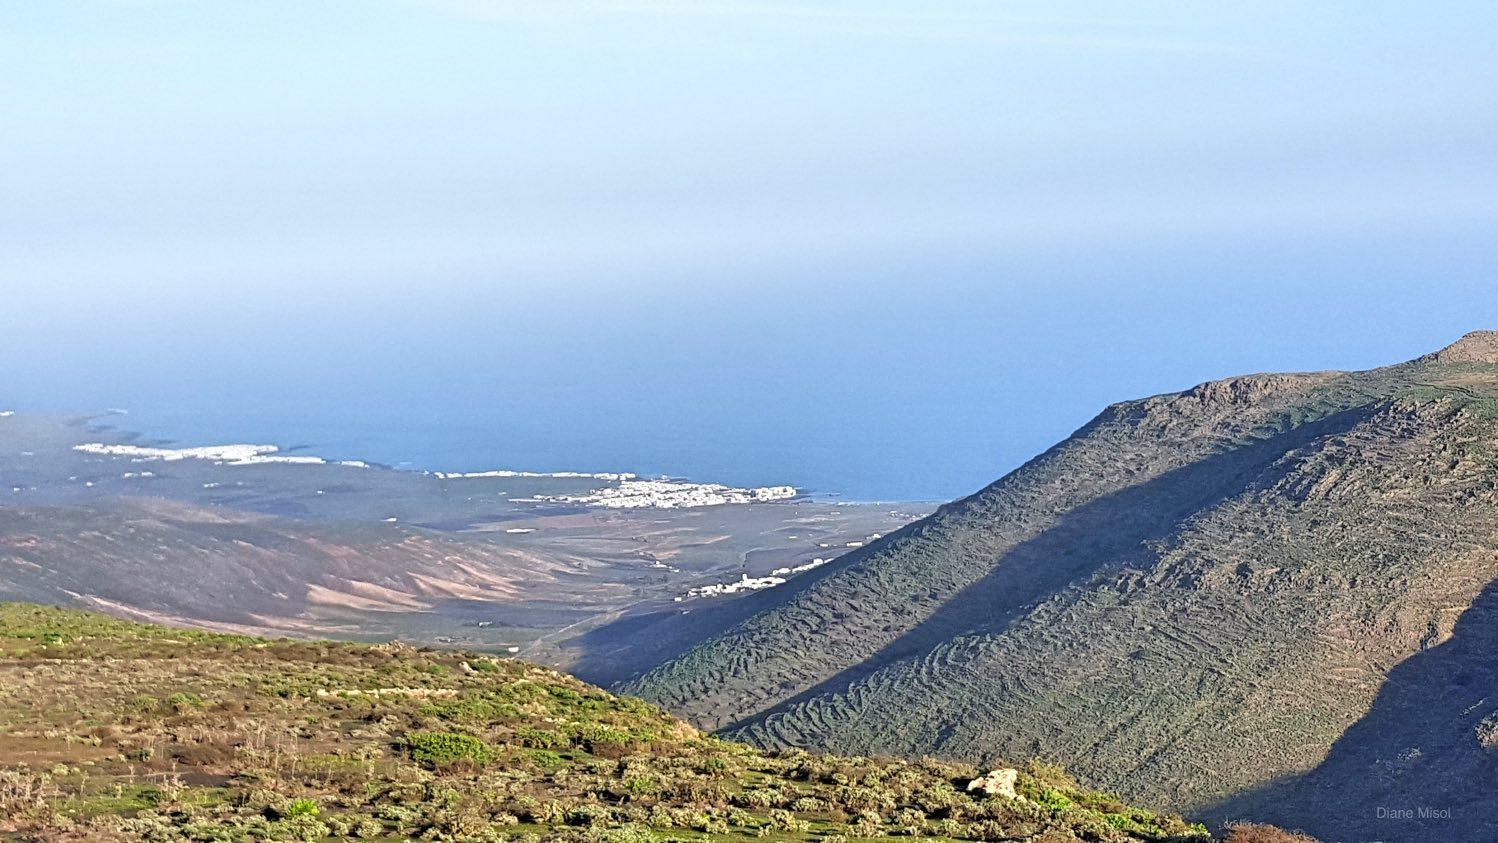 Coastal View of Lanzarote, Canary Islands